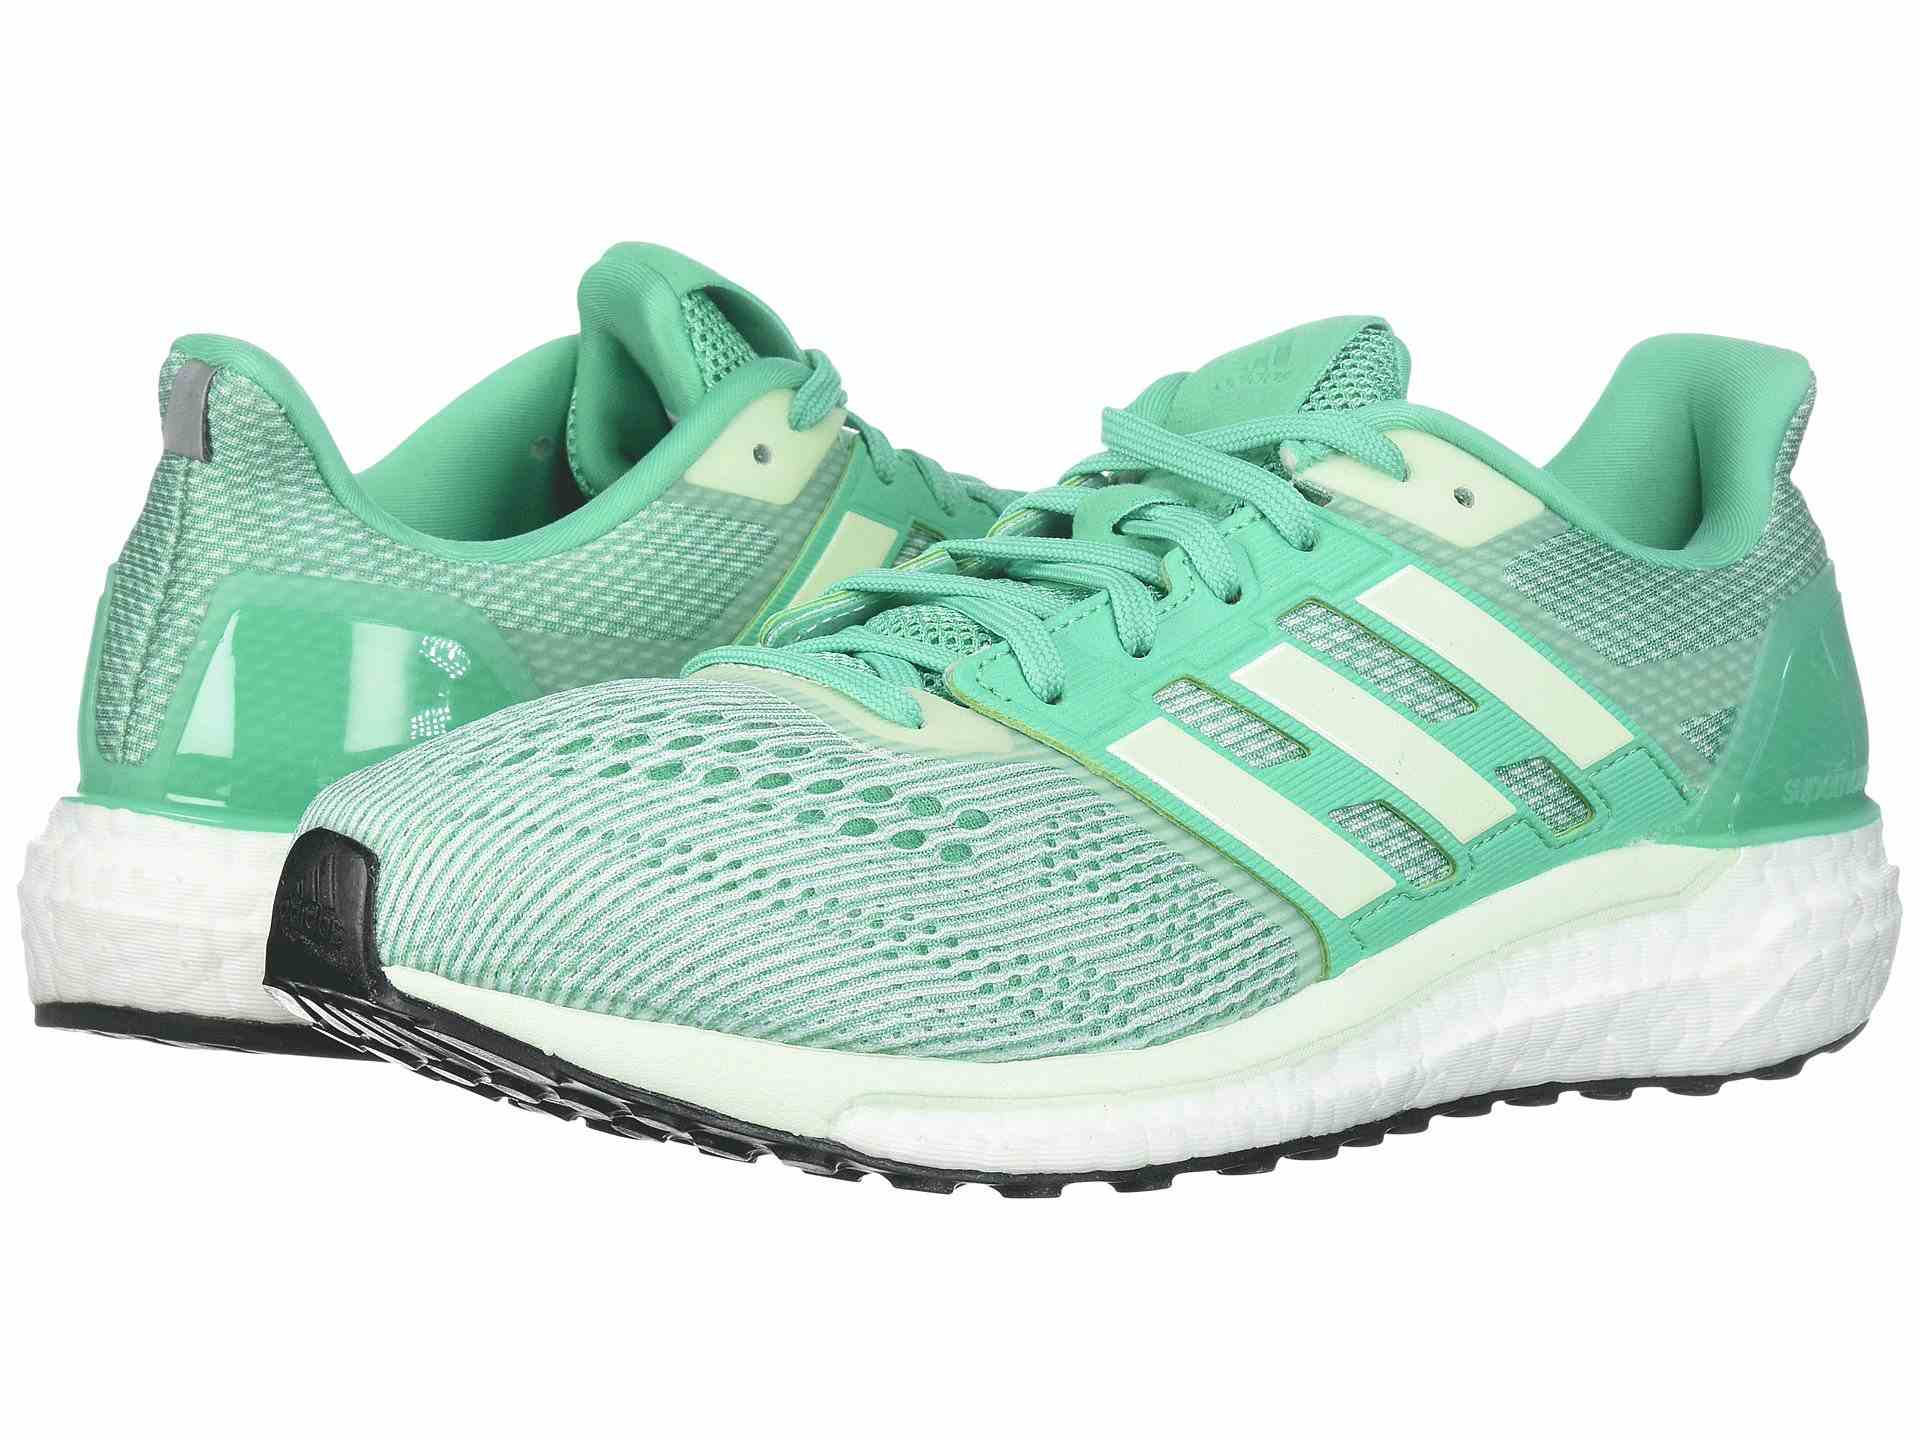 6d196af25cc9 Best for Road Running  Adidas Supernova Glide Women s Running Shoes. Buy on  ...